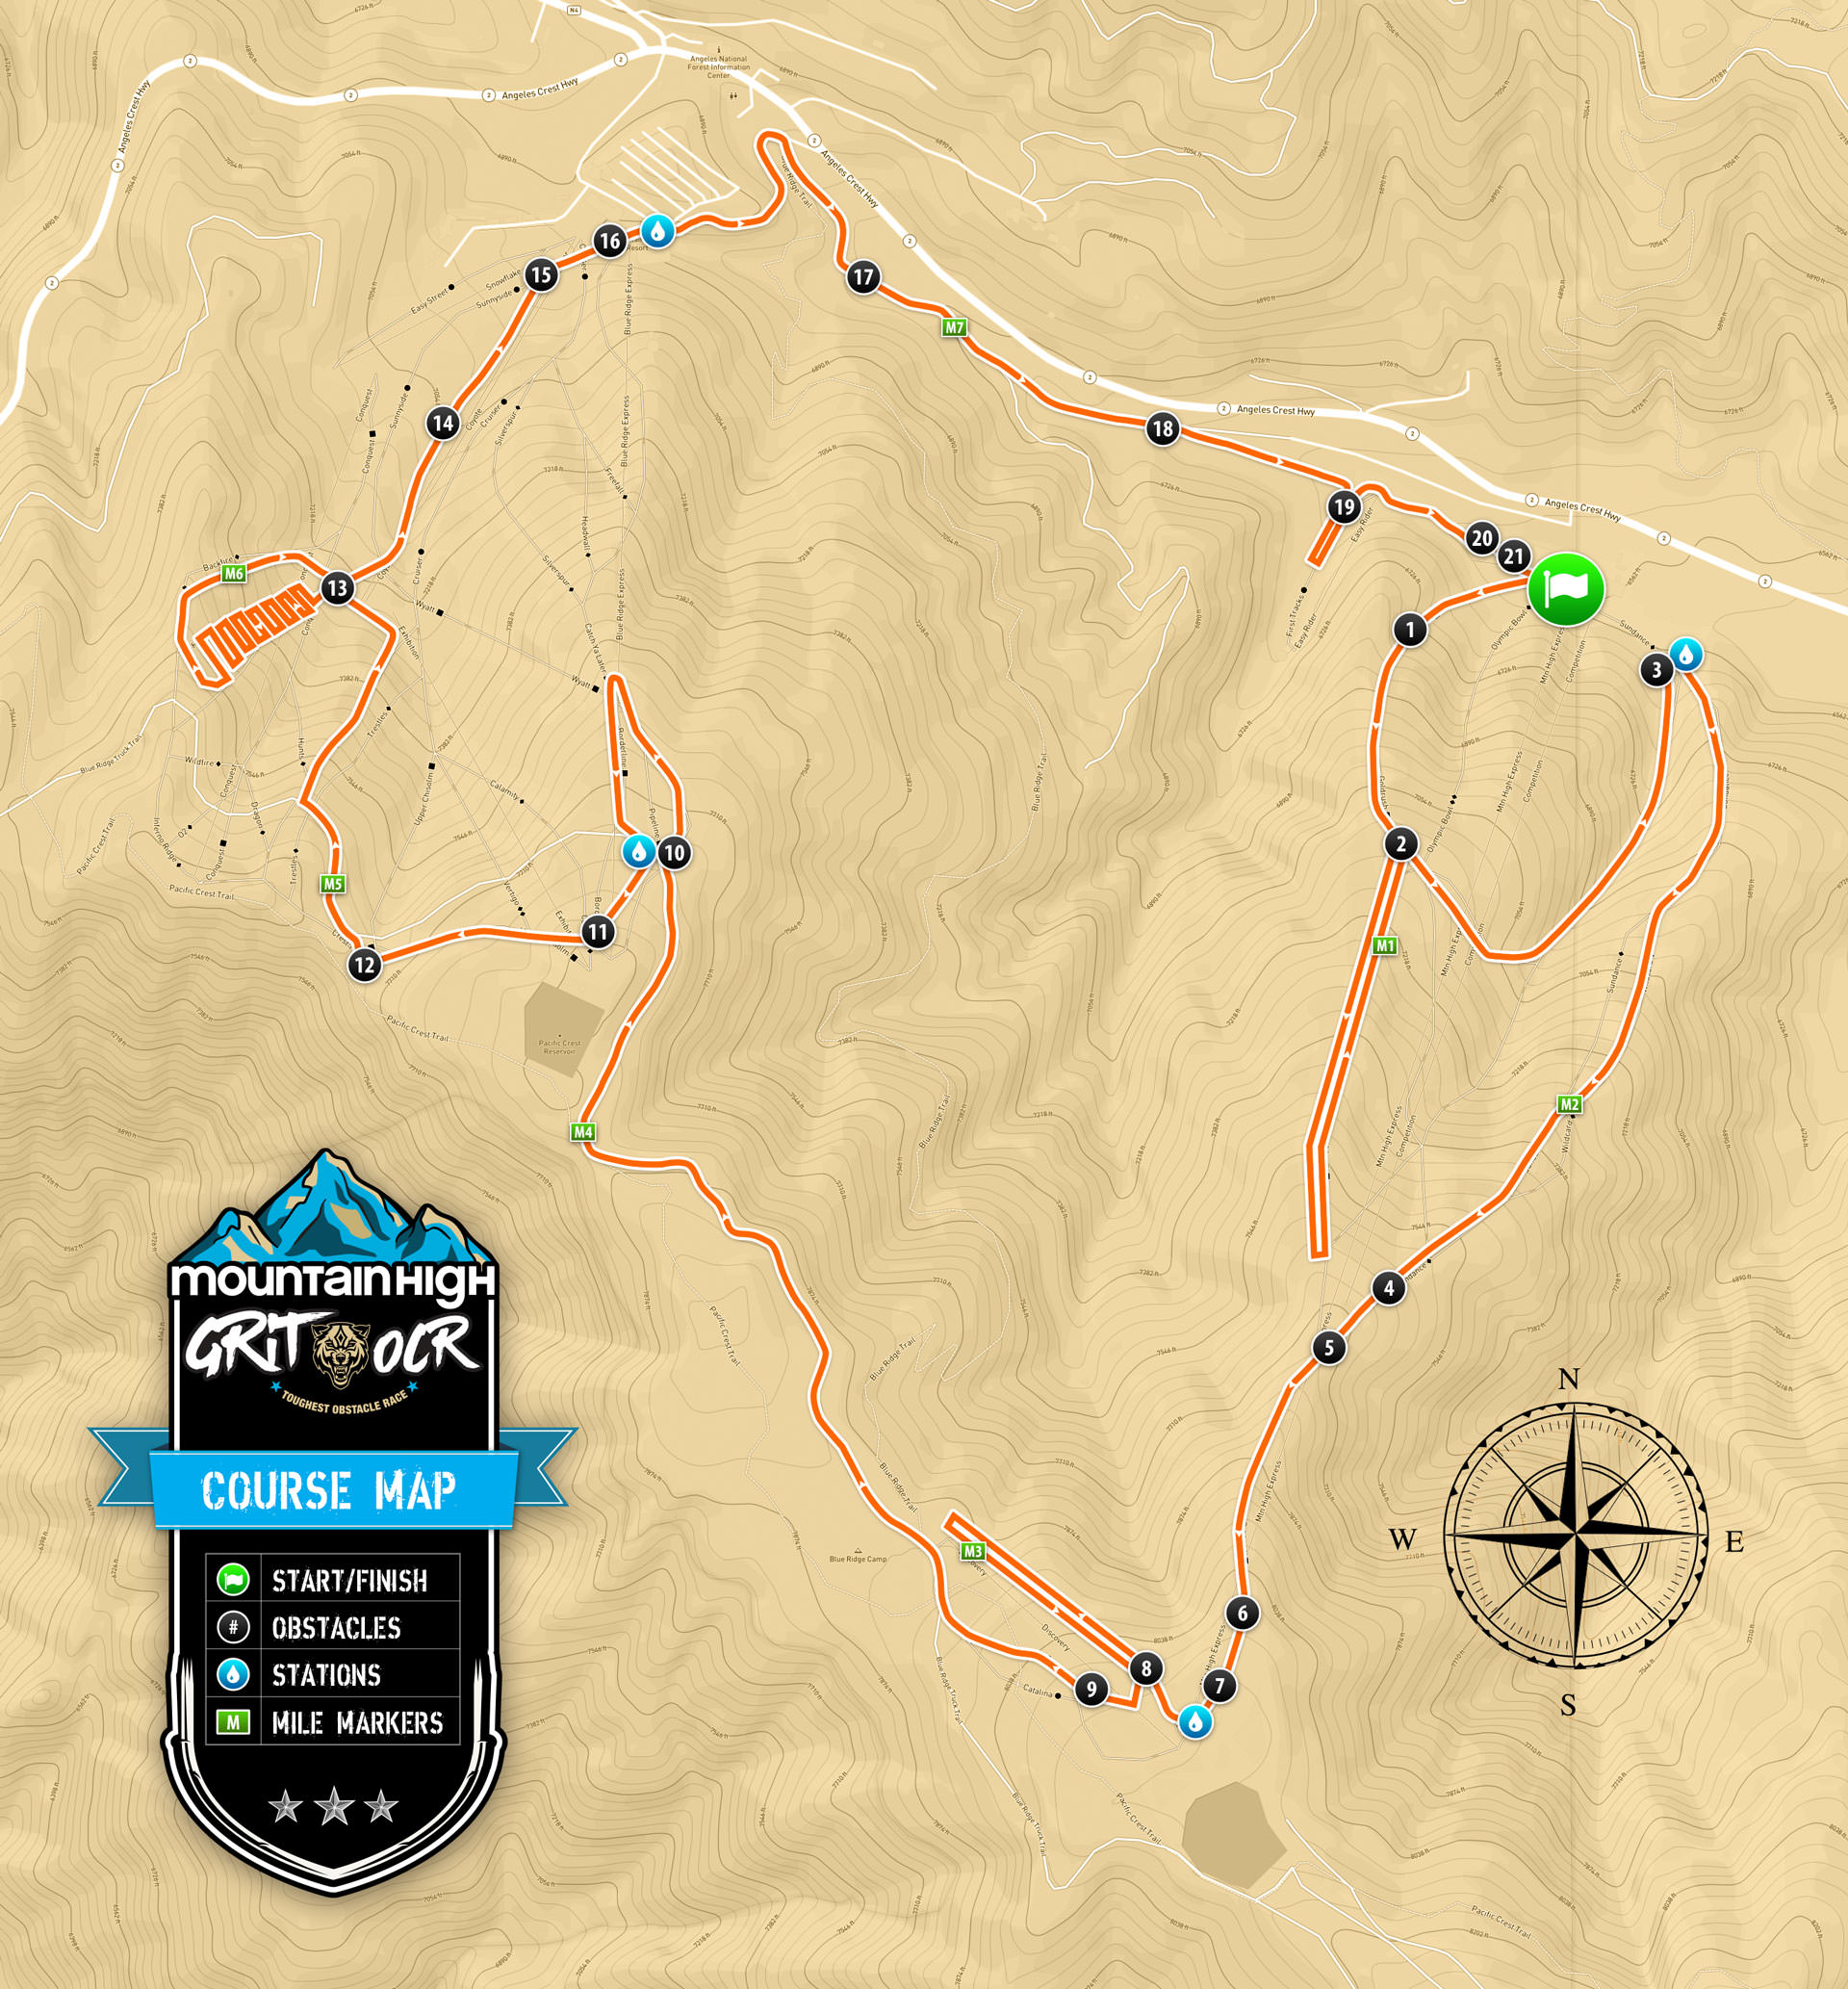 Grit OCR Mt. High Course Map